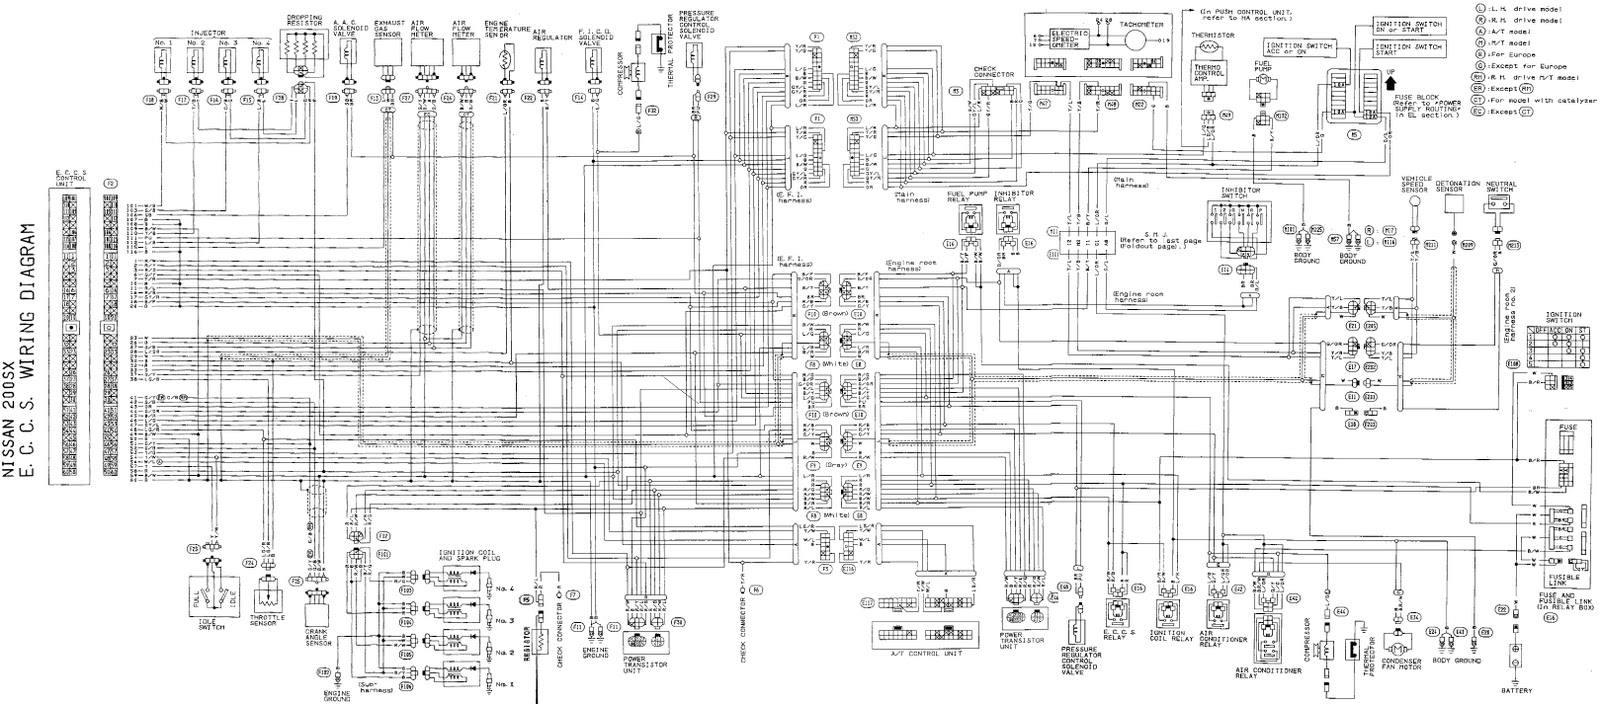 Nissan 200x Eccs Complete Wiring Diagram